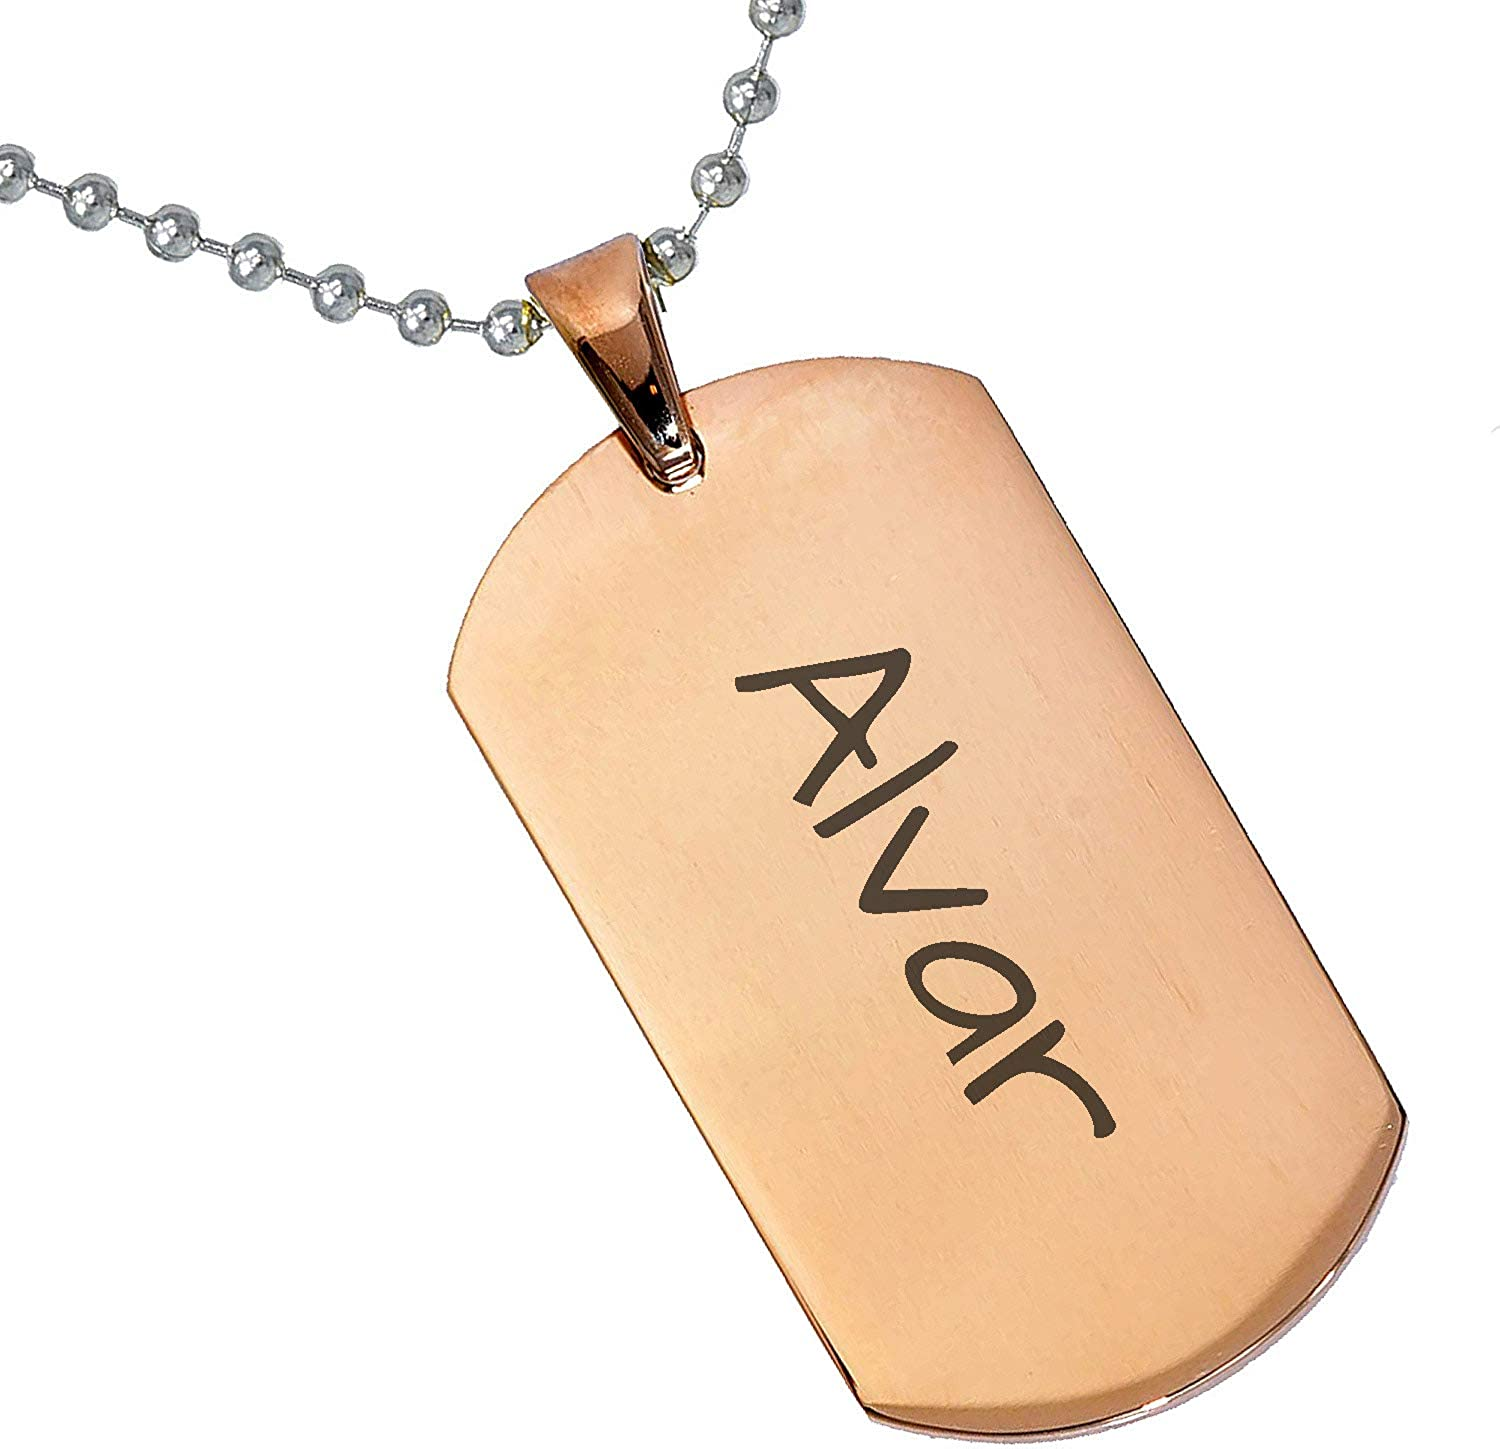 Stainless Steel Silver Gold Black Rose Gold Color Baby Name Alvar Engraved Personalized Gifts For Son Daughter Boyfriend Girlfriend Initial Customizable Pendant Necklace Dog Tags 24 Ball Chains